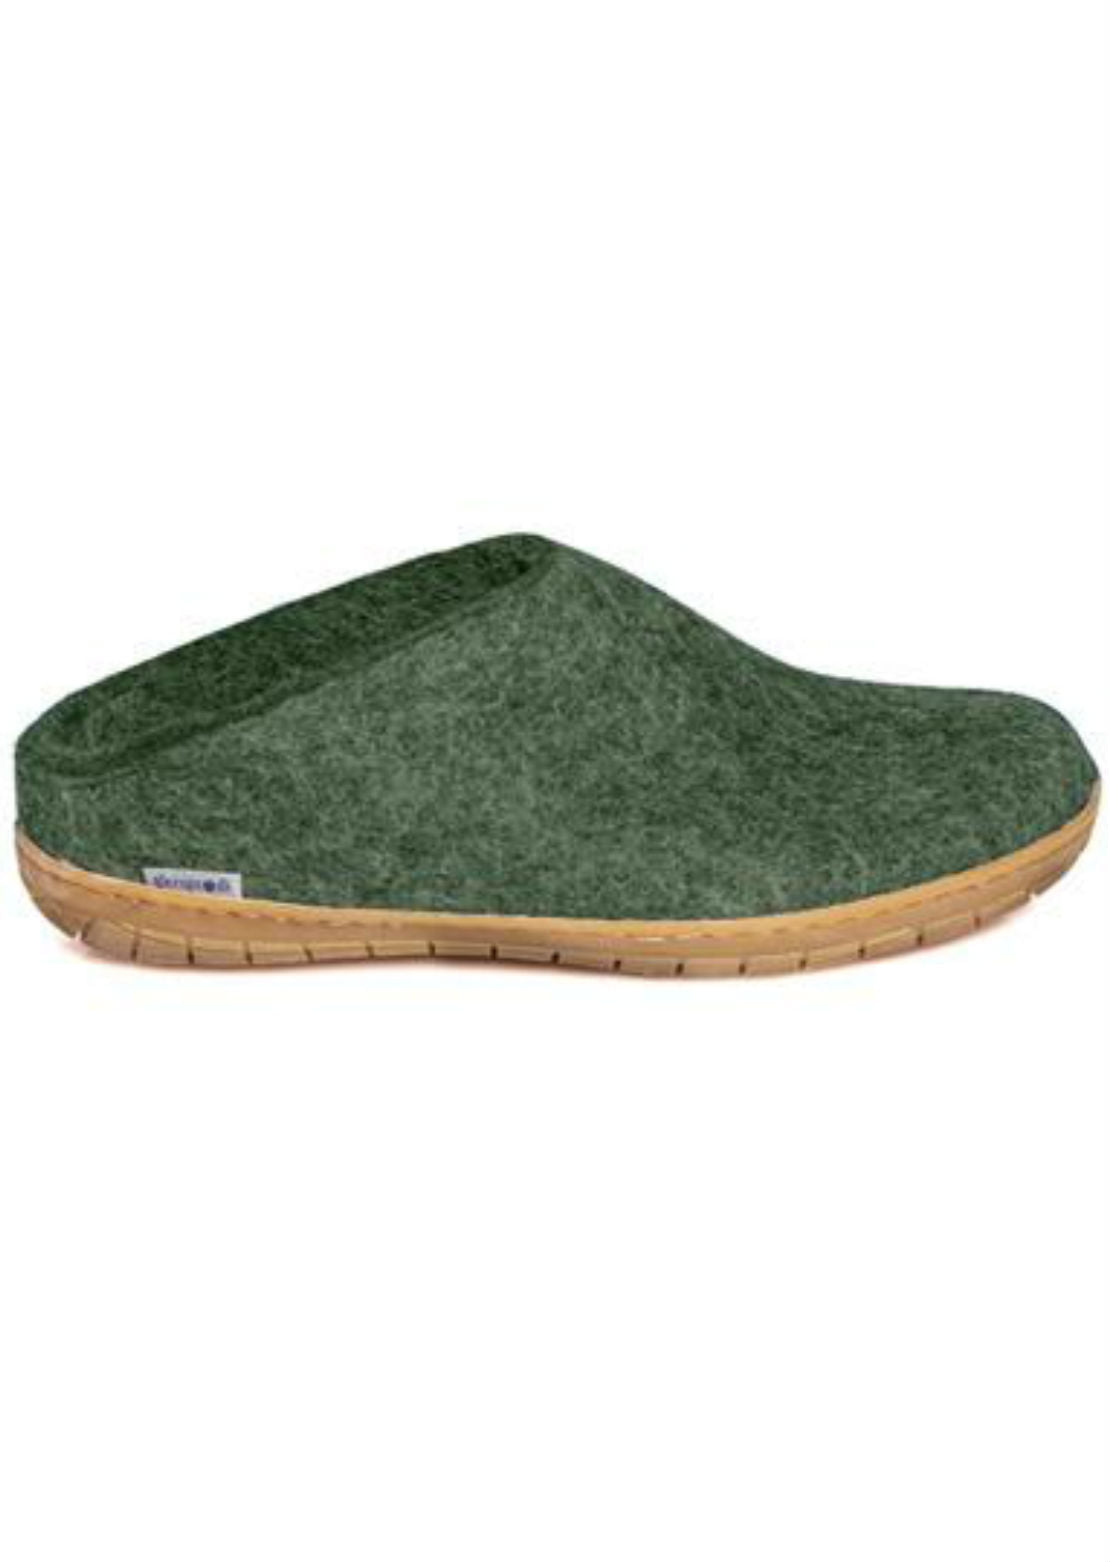 Glerups Unisex Natural Rubber Open Heel Slipper